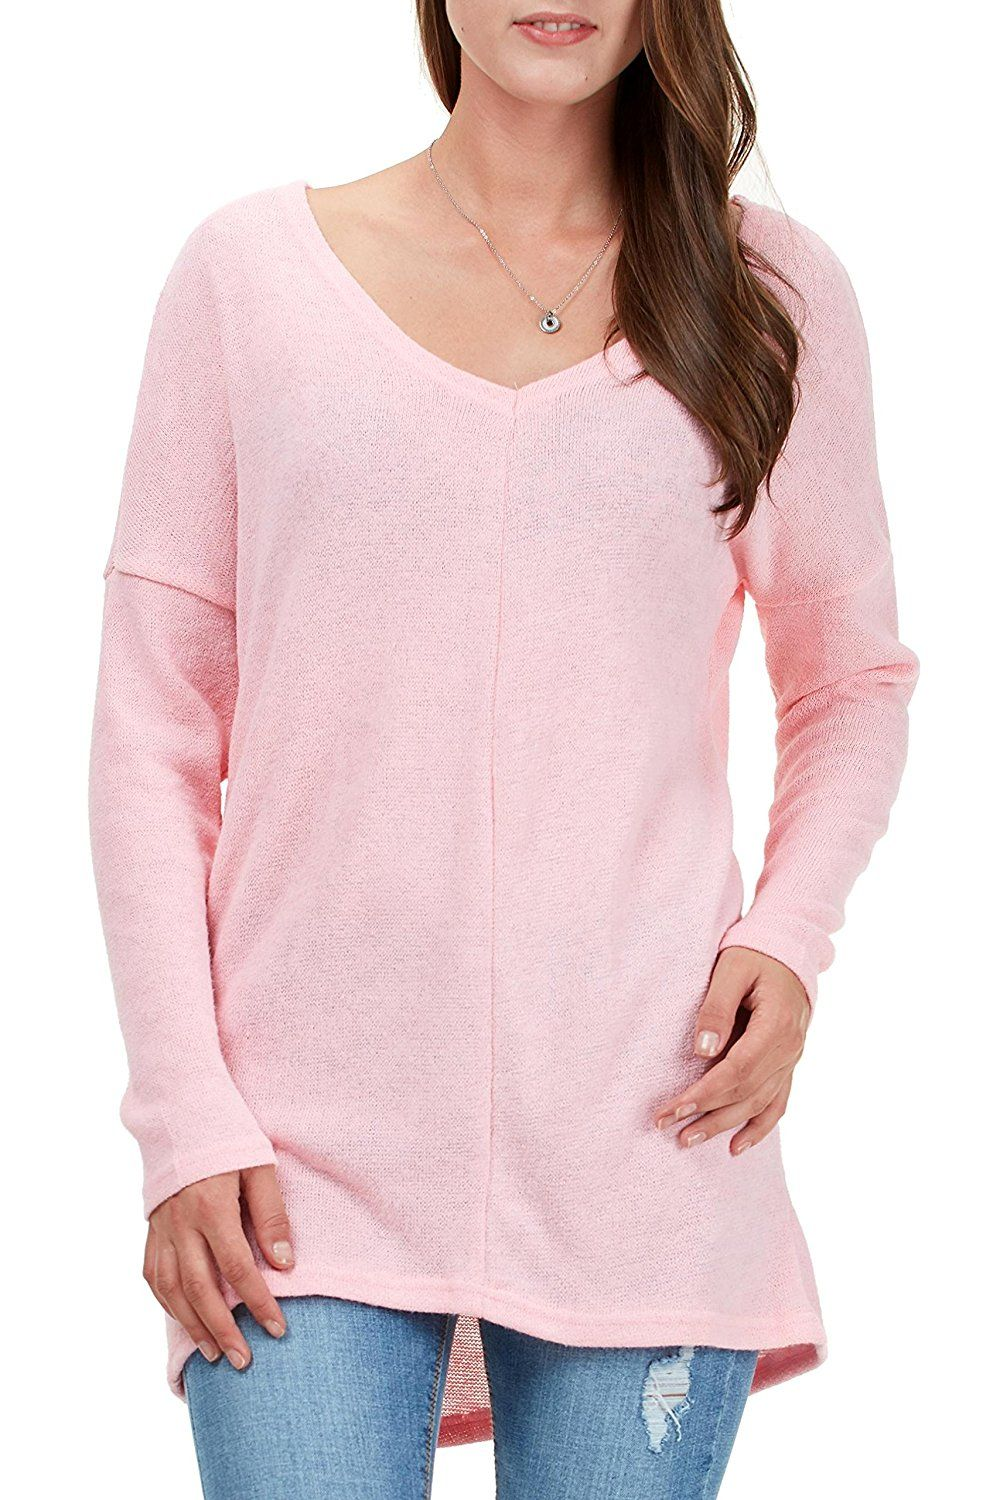 ffa5367f45a Fidus Women's Long Sleeve V Neck Soft Knitted Casual Loose Tunic Tops